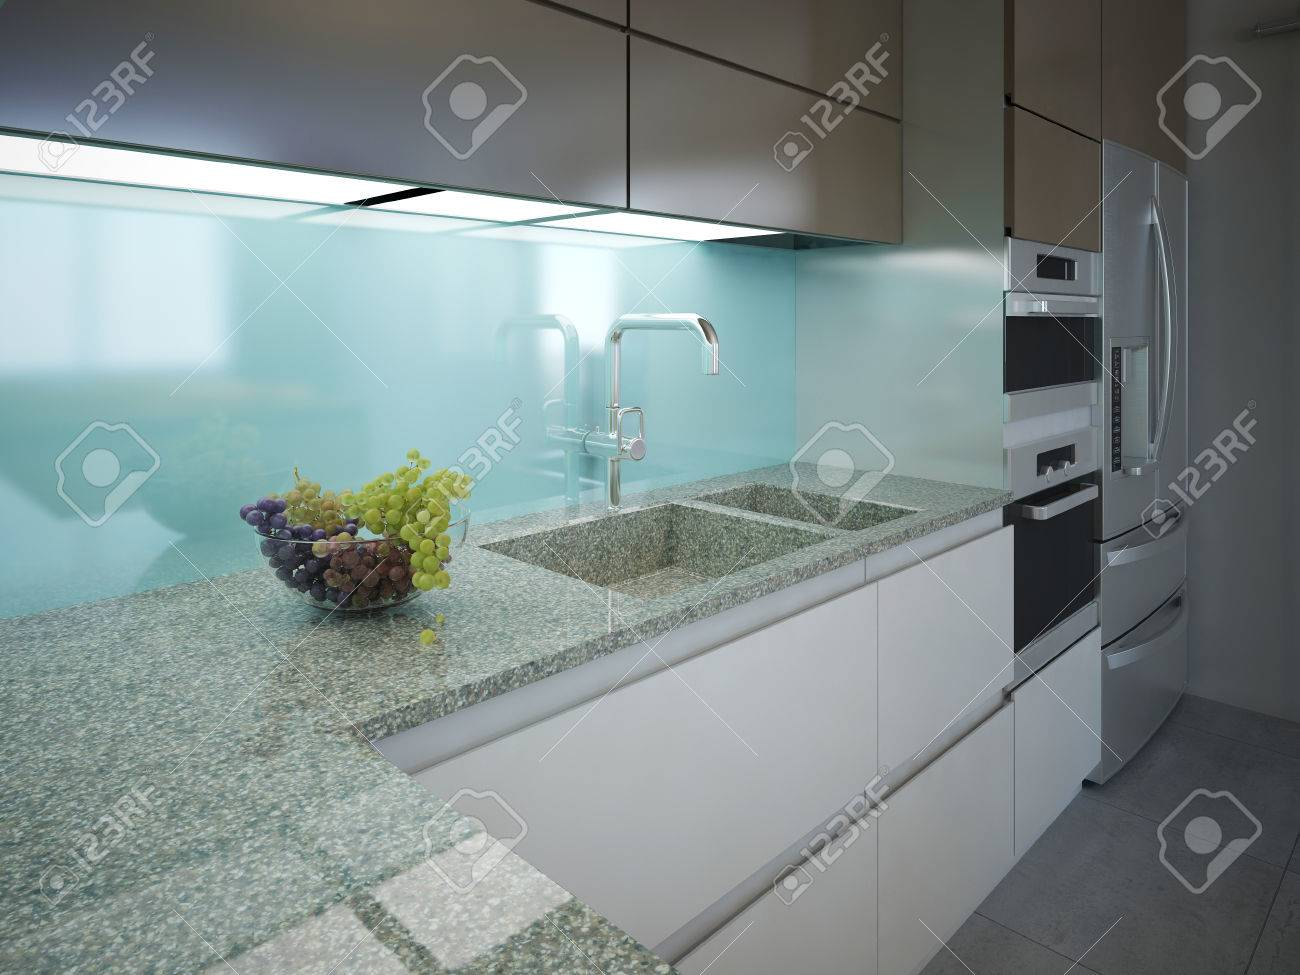 Modern Kitchen Clean Interior Design. Marble Working Area With ...